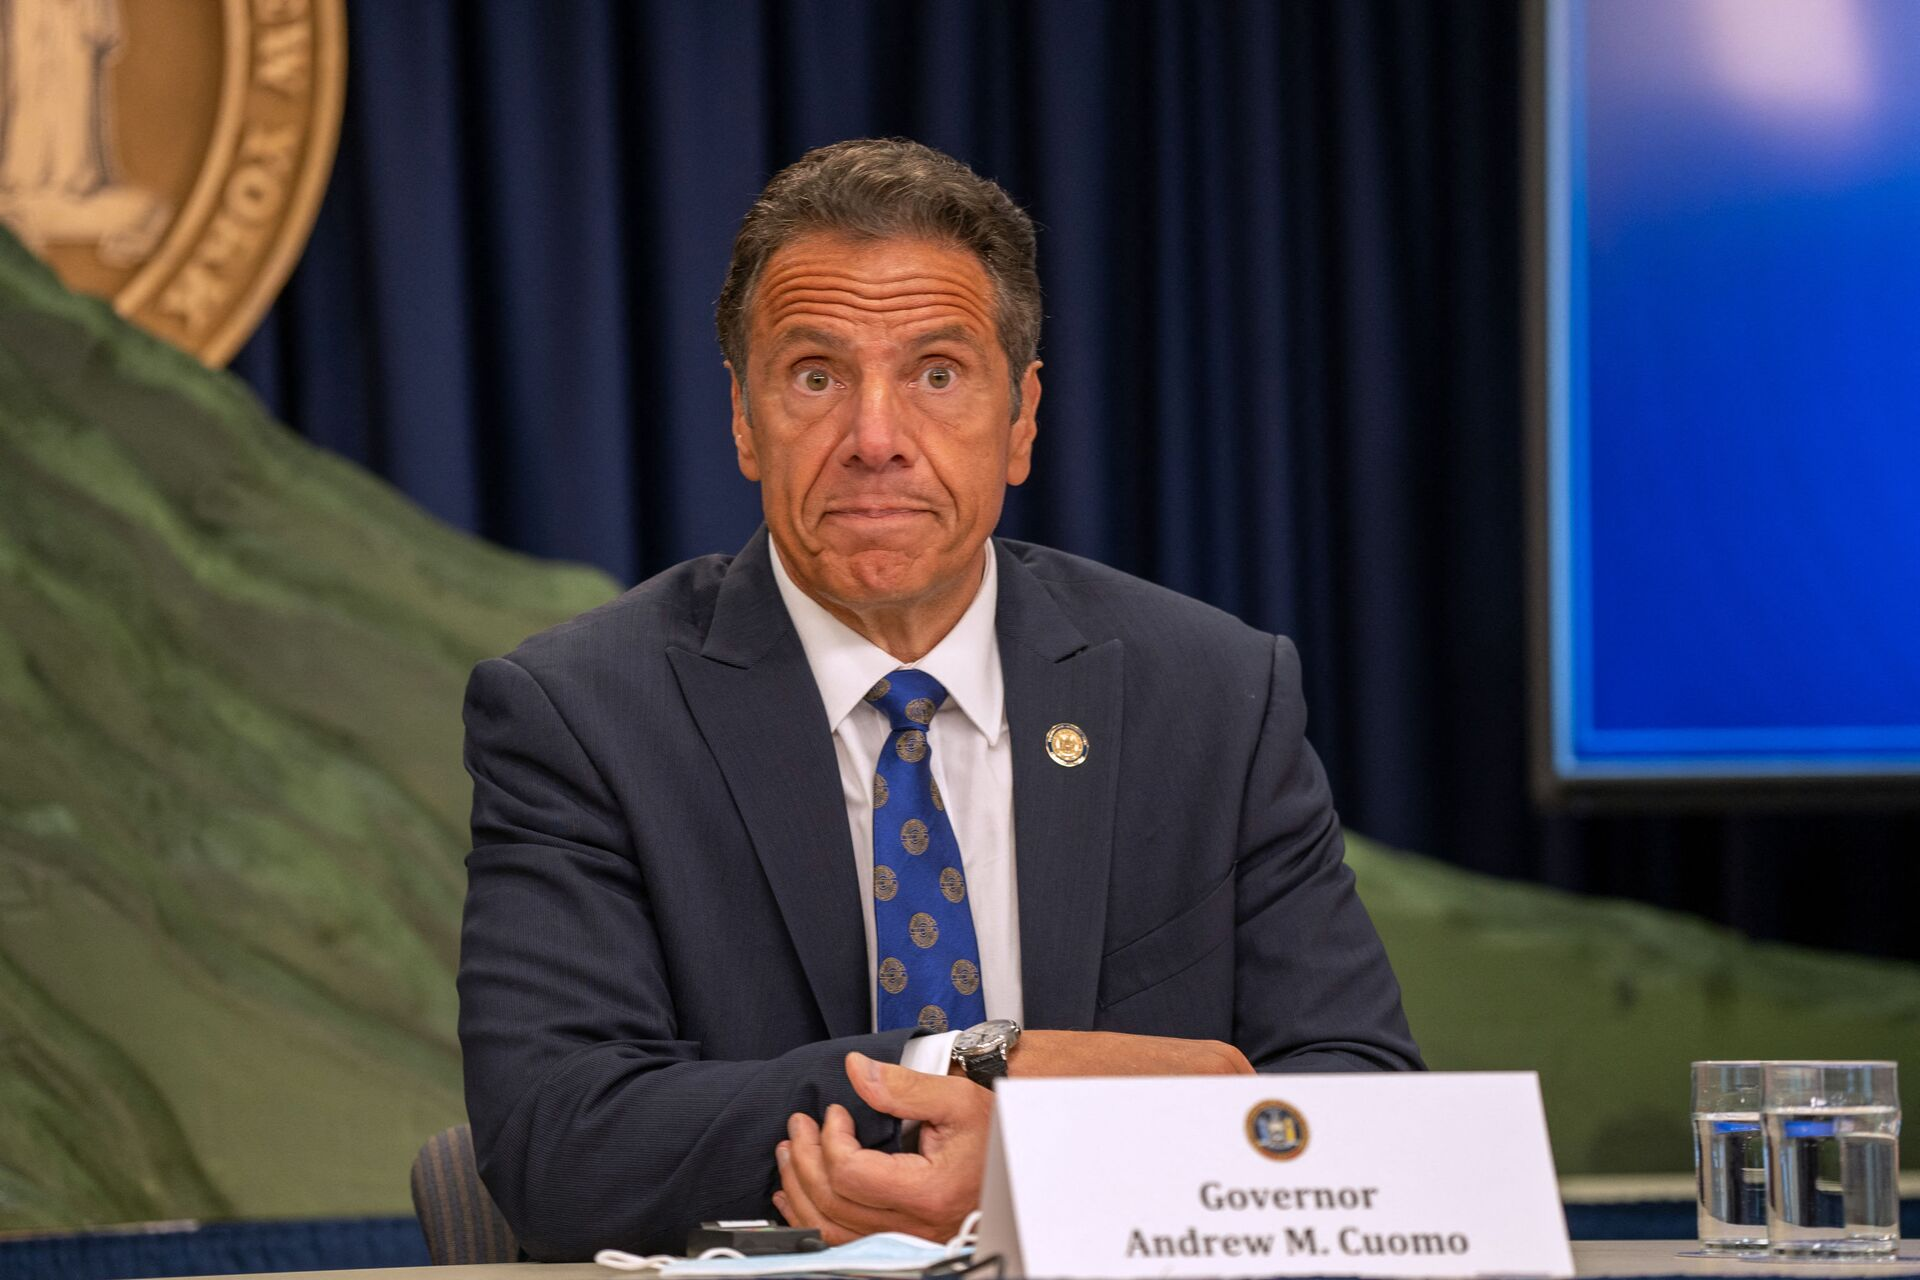 New York Governor Andrew Cuomo speaks during a COVID-19 briefing on July 6, 2020 in New York City. On the 128th day since the first confirmed case in New York and on the first day of phase 3 of the reopening, Gov. Cuomo asked New Yorkers to continue to be smart while citing the rise of infections in other states. - Sputnik International, 1920, 07.09.2021